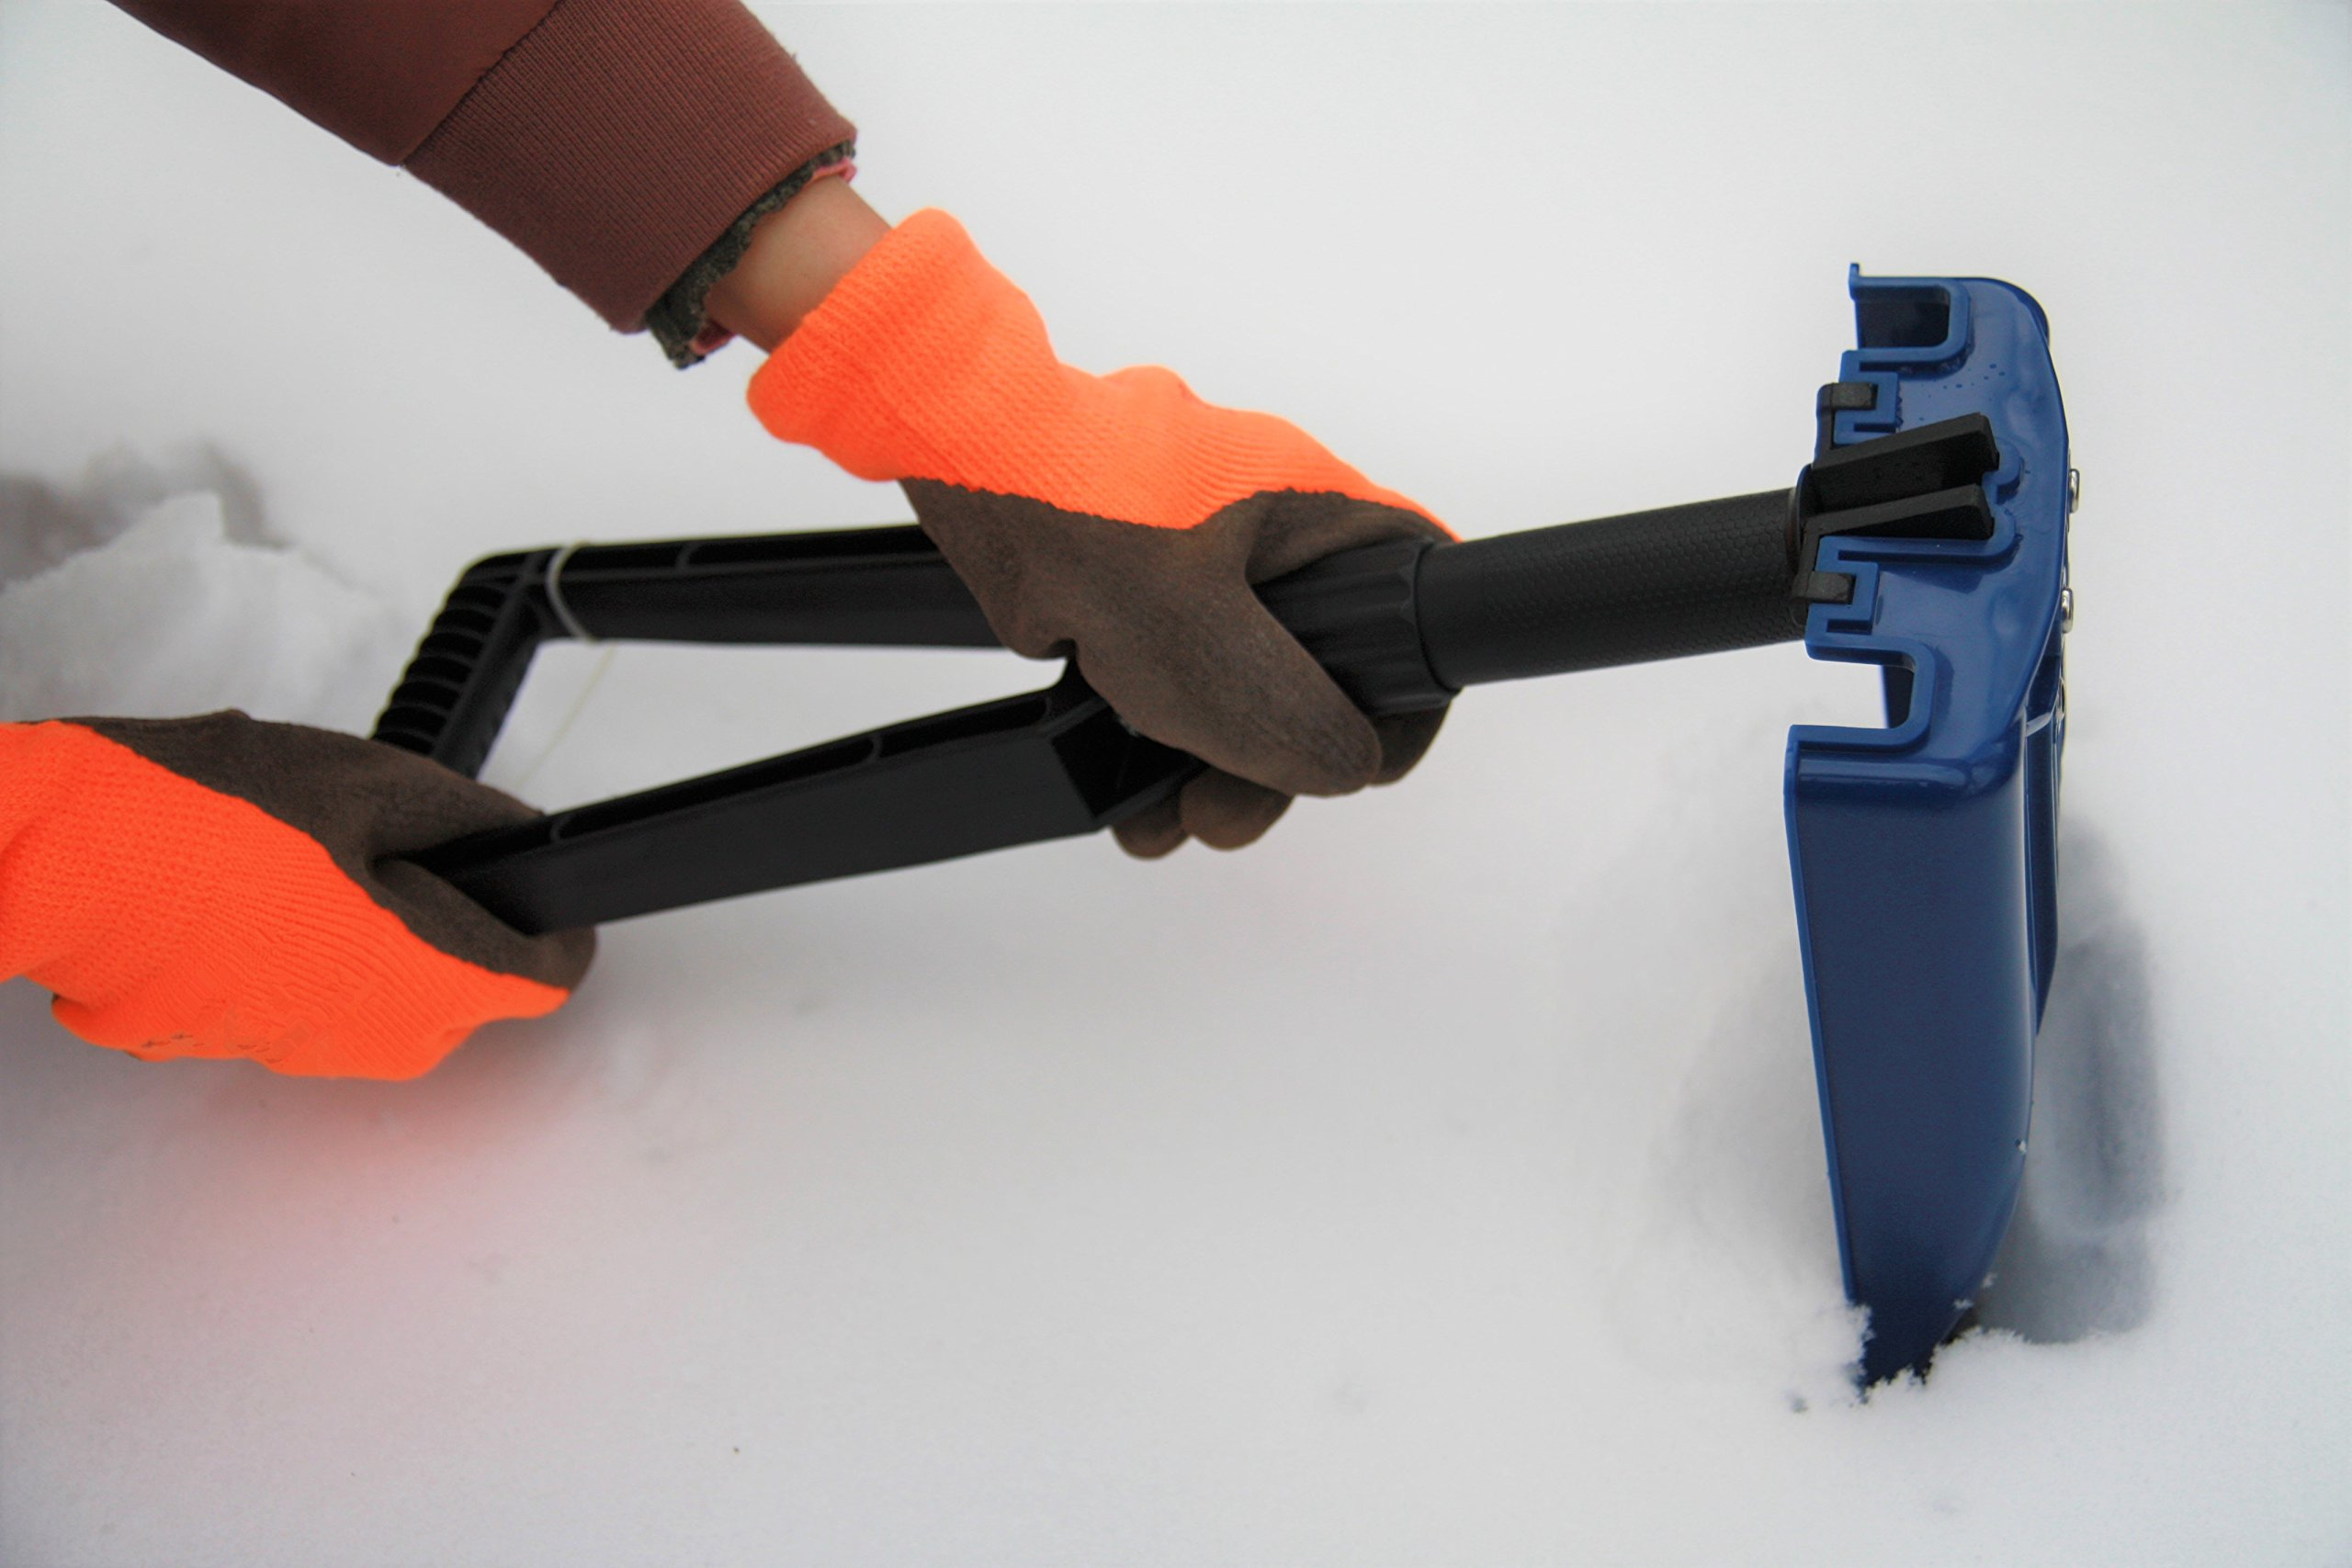 ORIENTOOLS Collapsible Folding Snow Shovel with Durable Aluminum Edge Blade (Blade 6'') by ORIENTOOLS (Image #6)